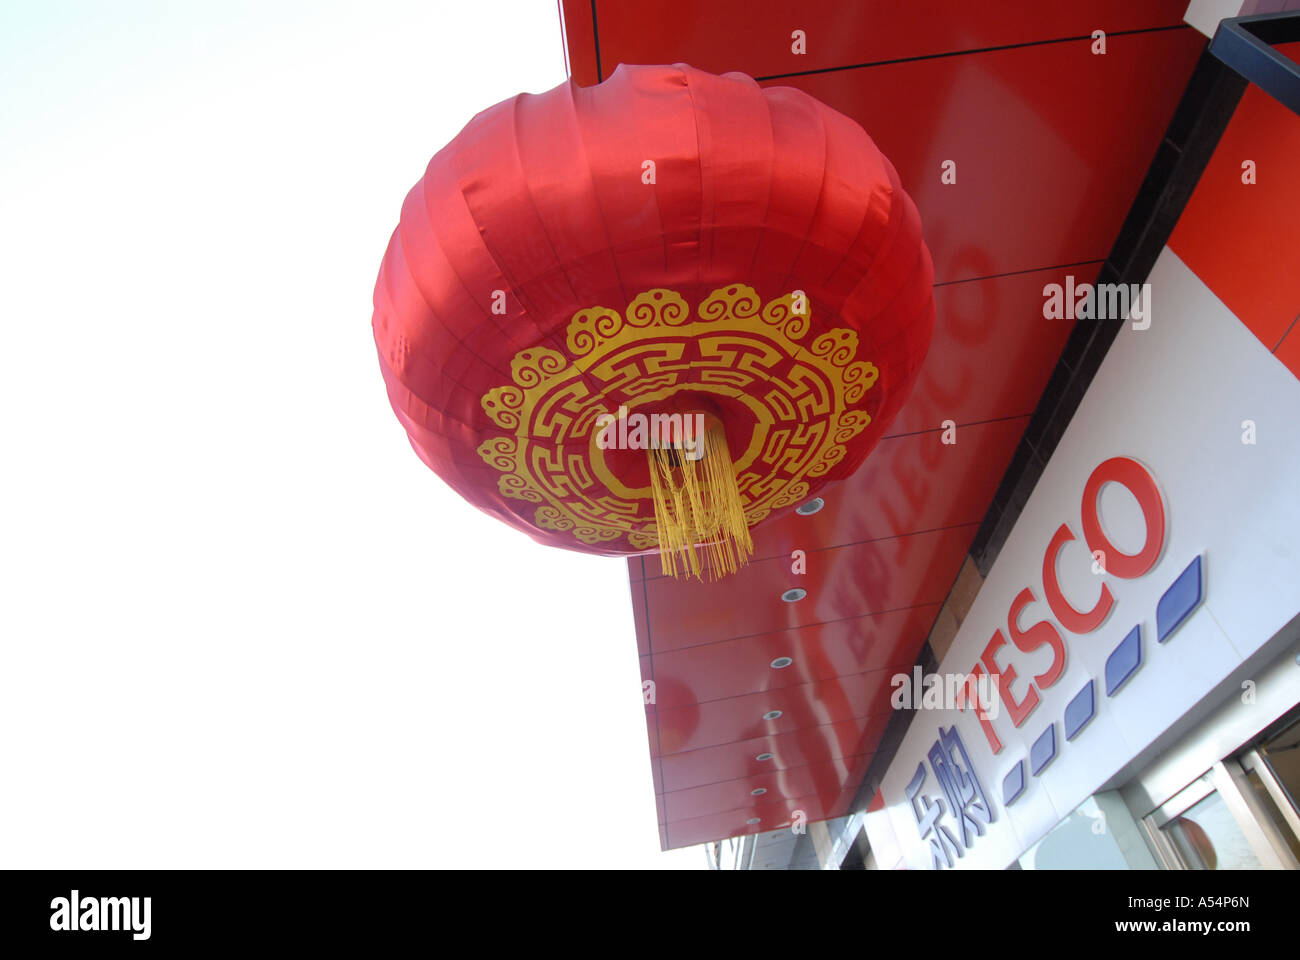 The first Teco s to open in China under its own name shopping happily means happy means buy or shopping - Stock Image